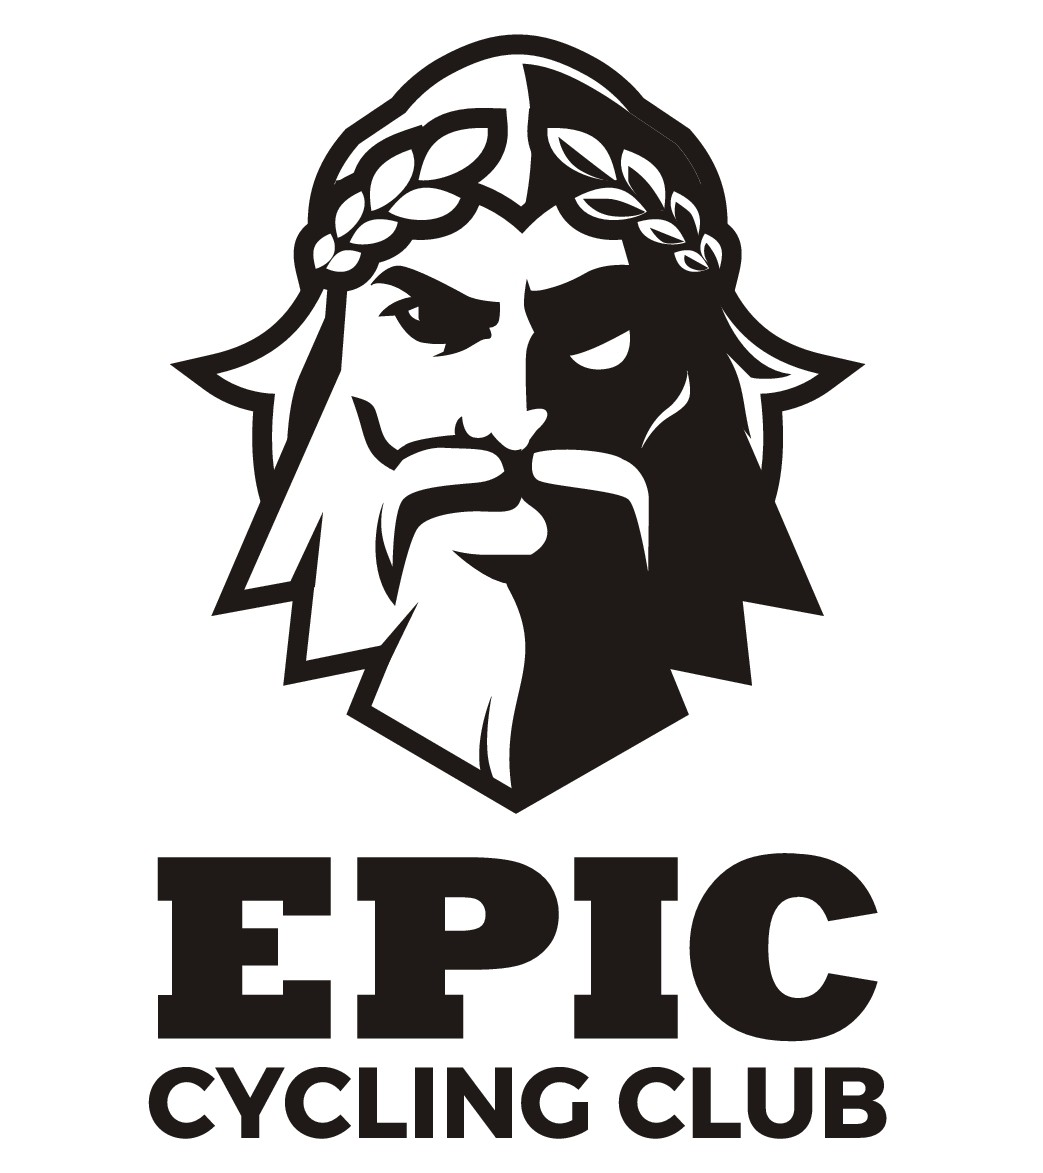 Cycling apparel company needs epic and playful logo